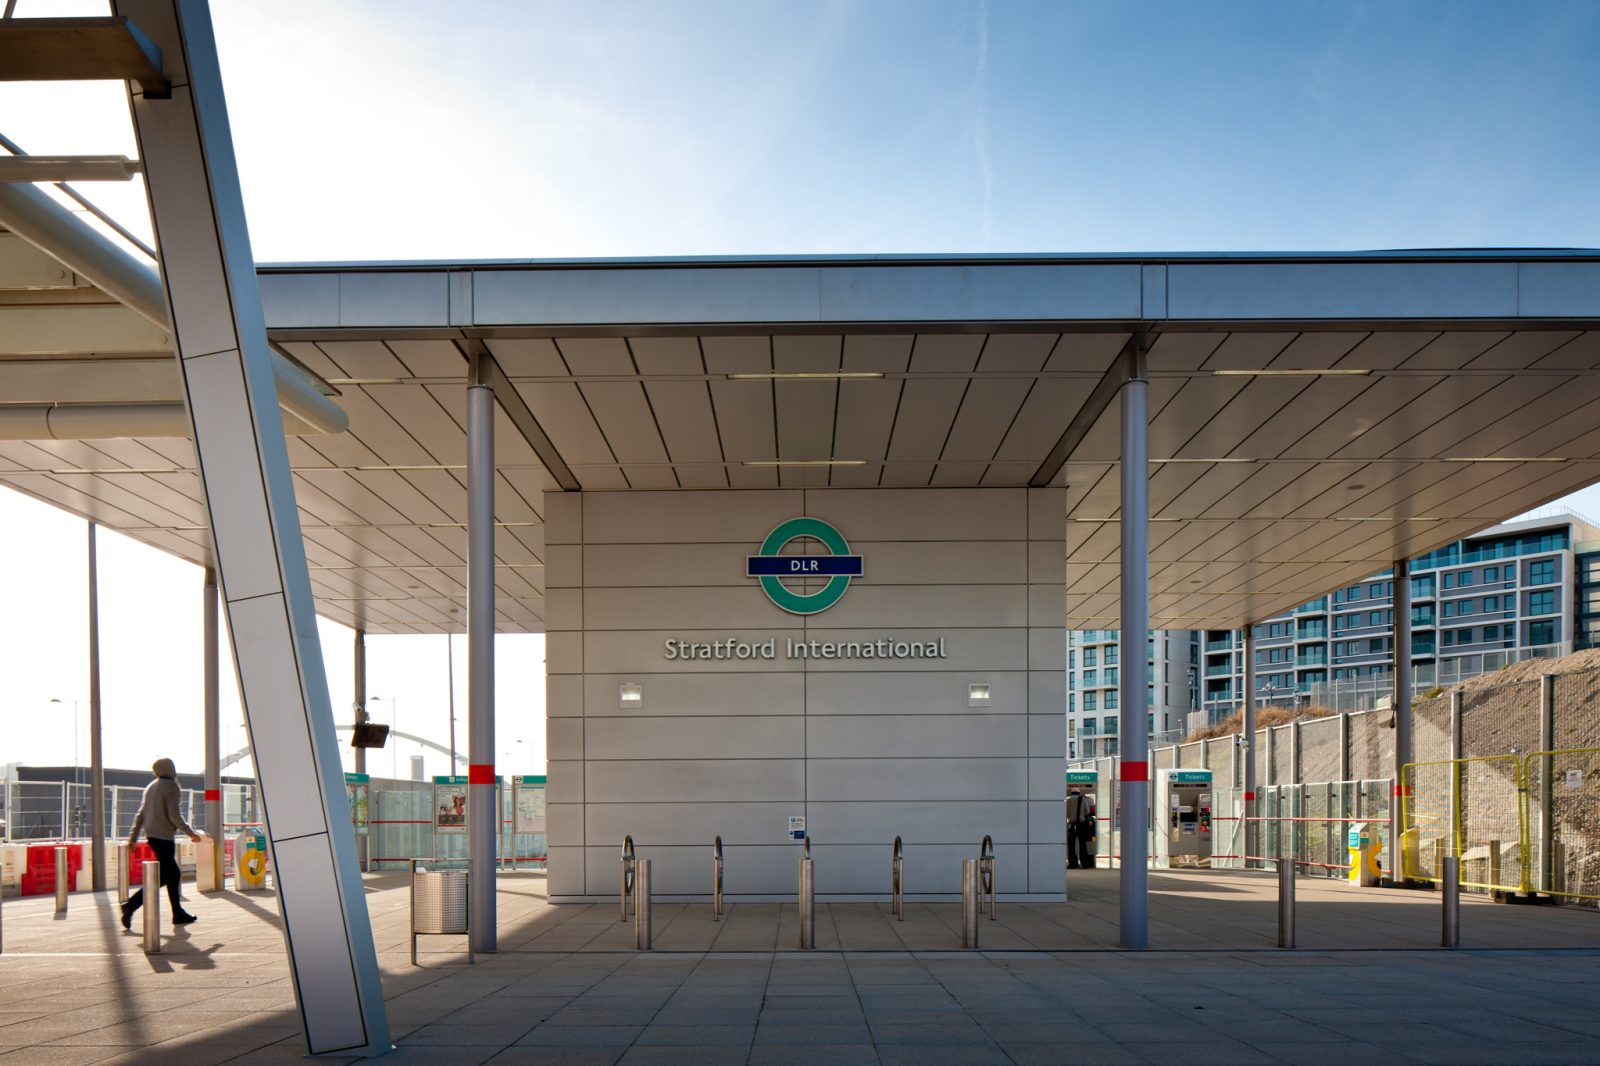 Stratford International DLR Station